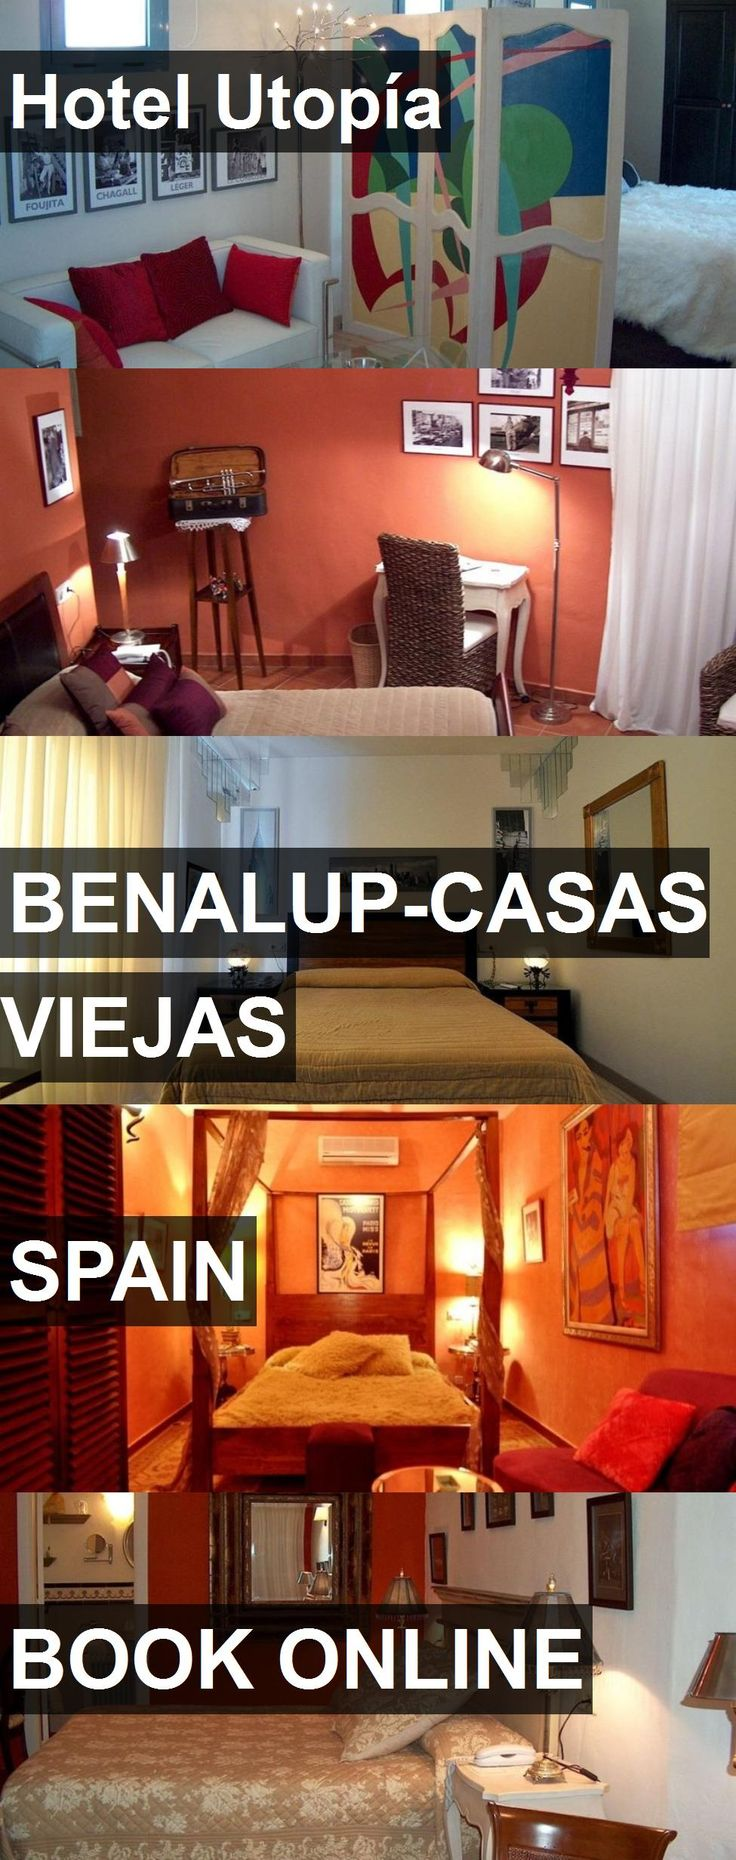 Hotel Hotel Utopía in Benalup-Casas Viejas, Spain. For more information, photos, reviews and best prices please follow the link. #Spain #Benalup-CasasViejas #HotelUtopía #hotel #travel #vacation